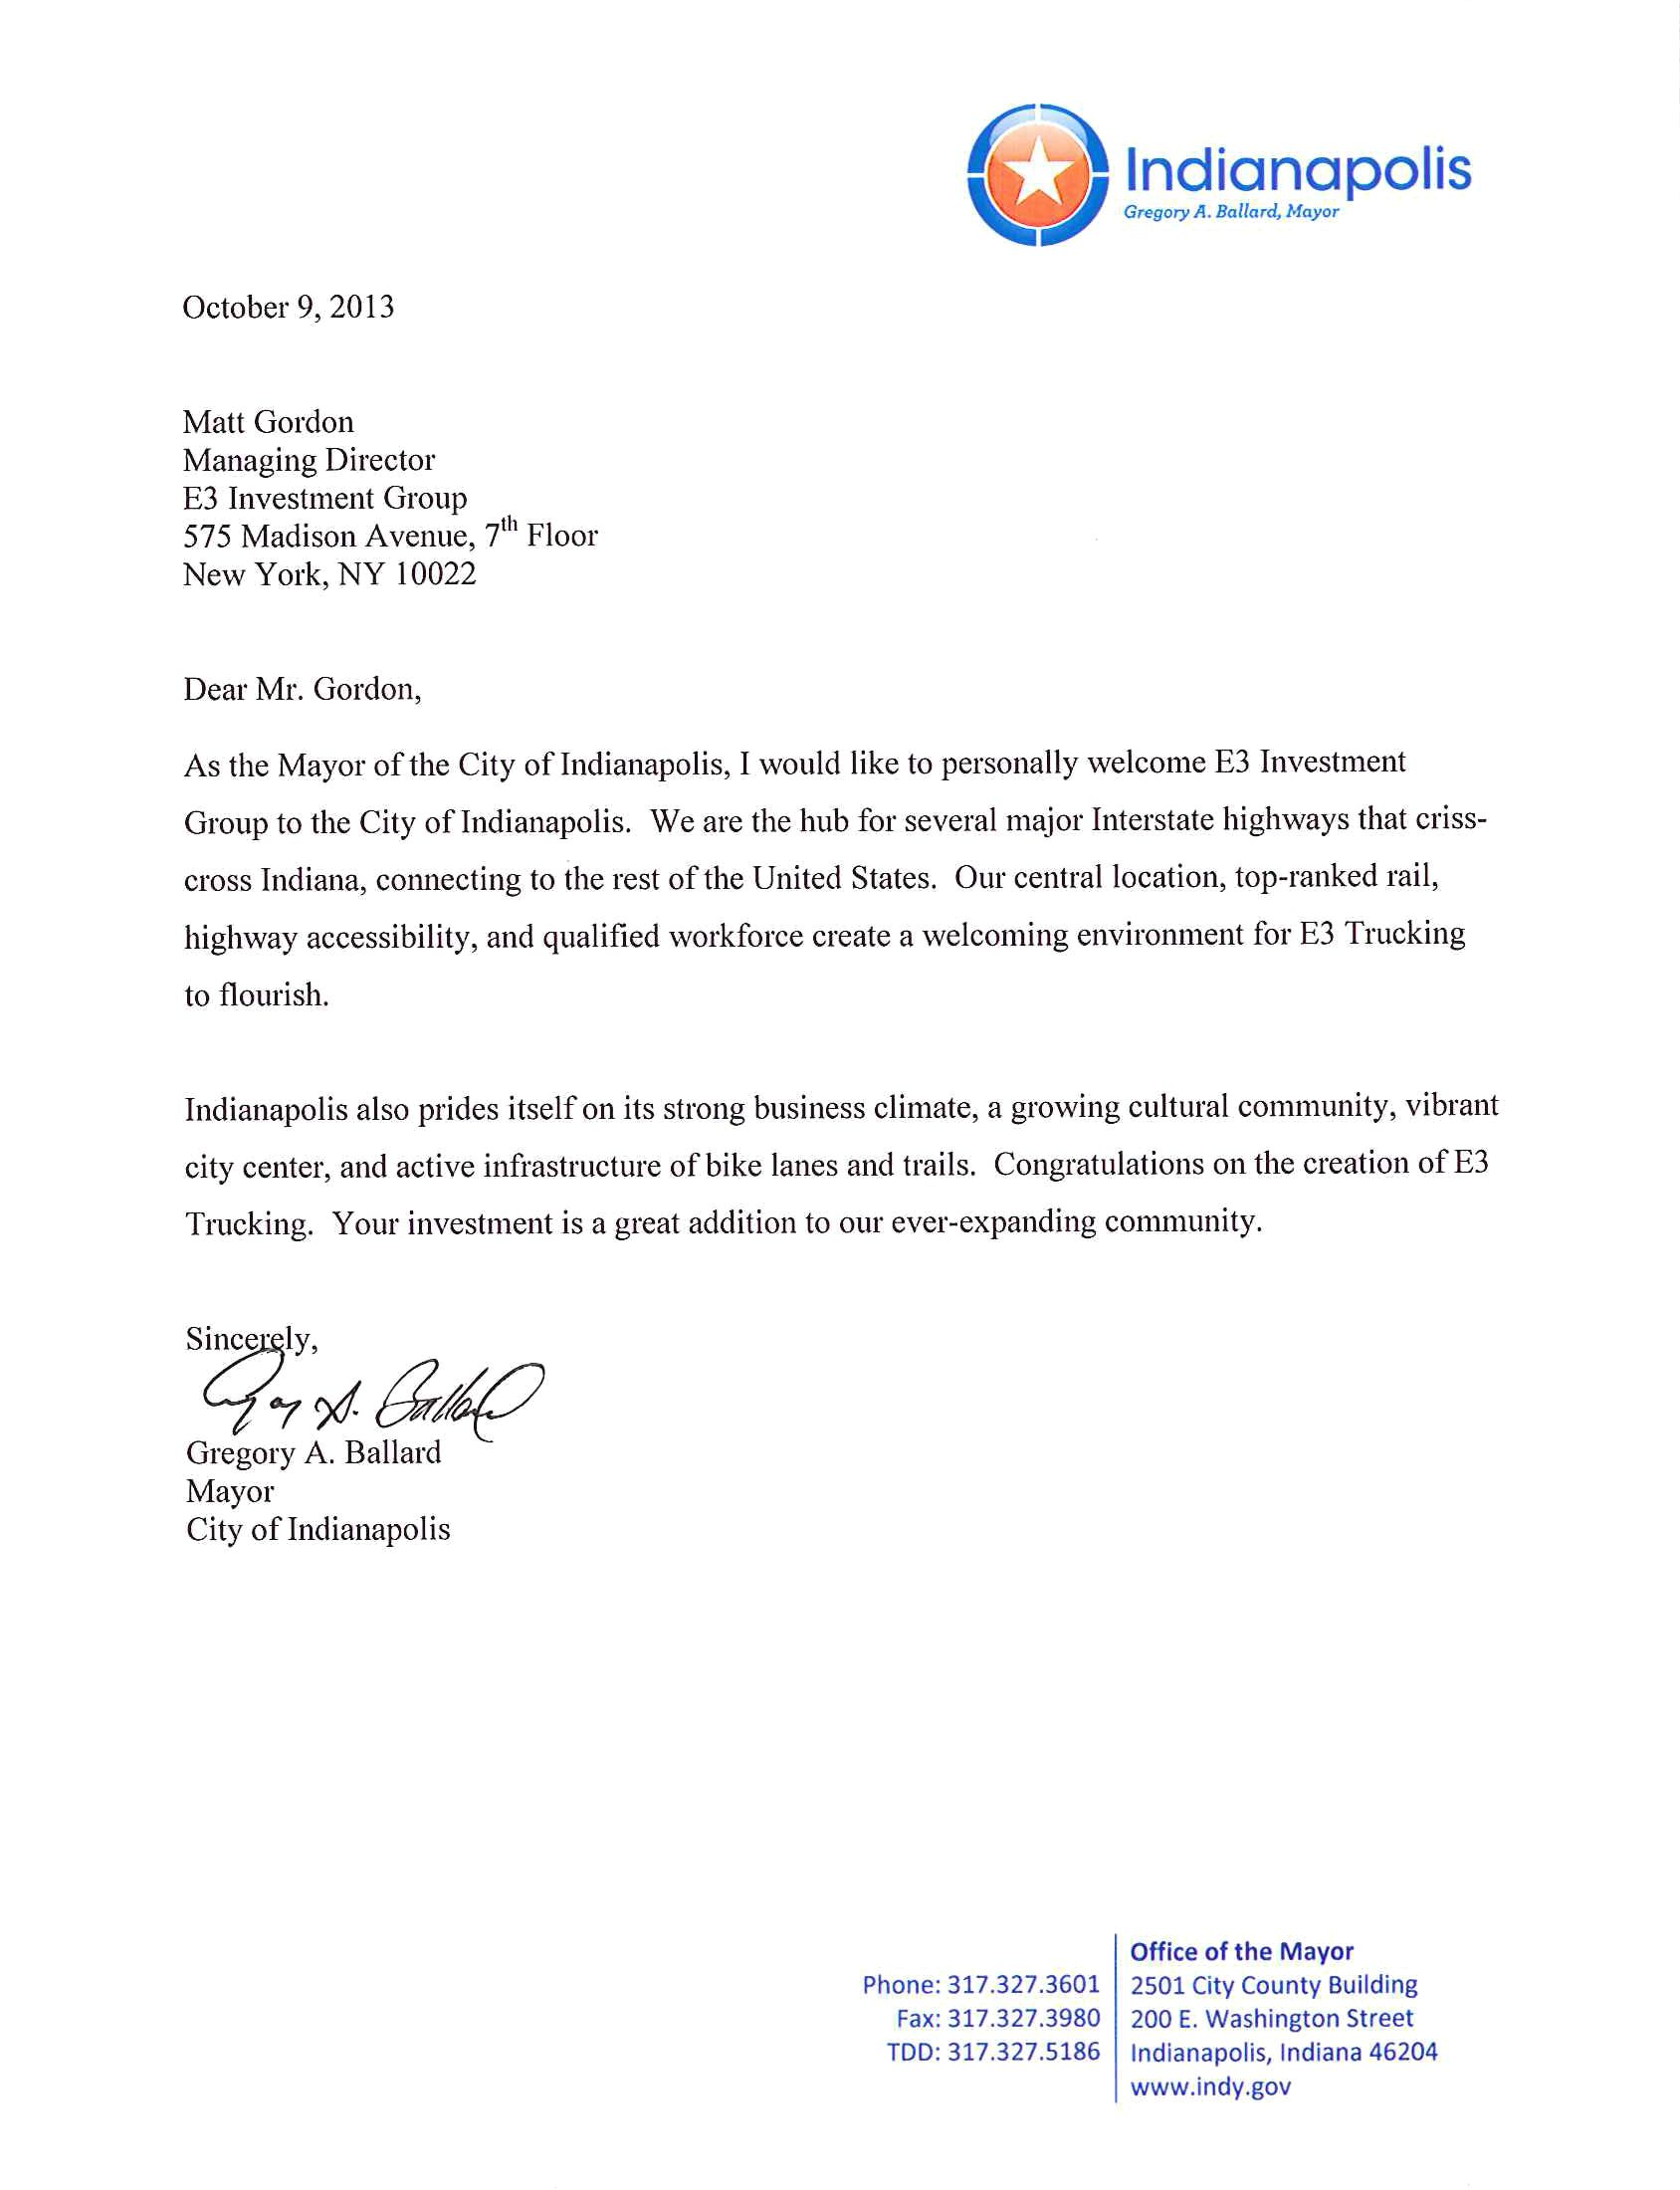 Welcome Letter Letter Examples Pinterest – Welcome Letter